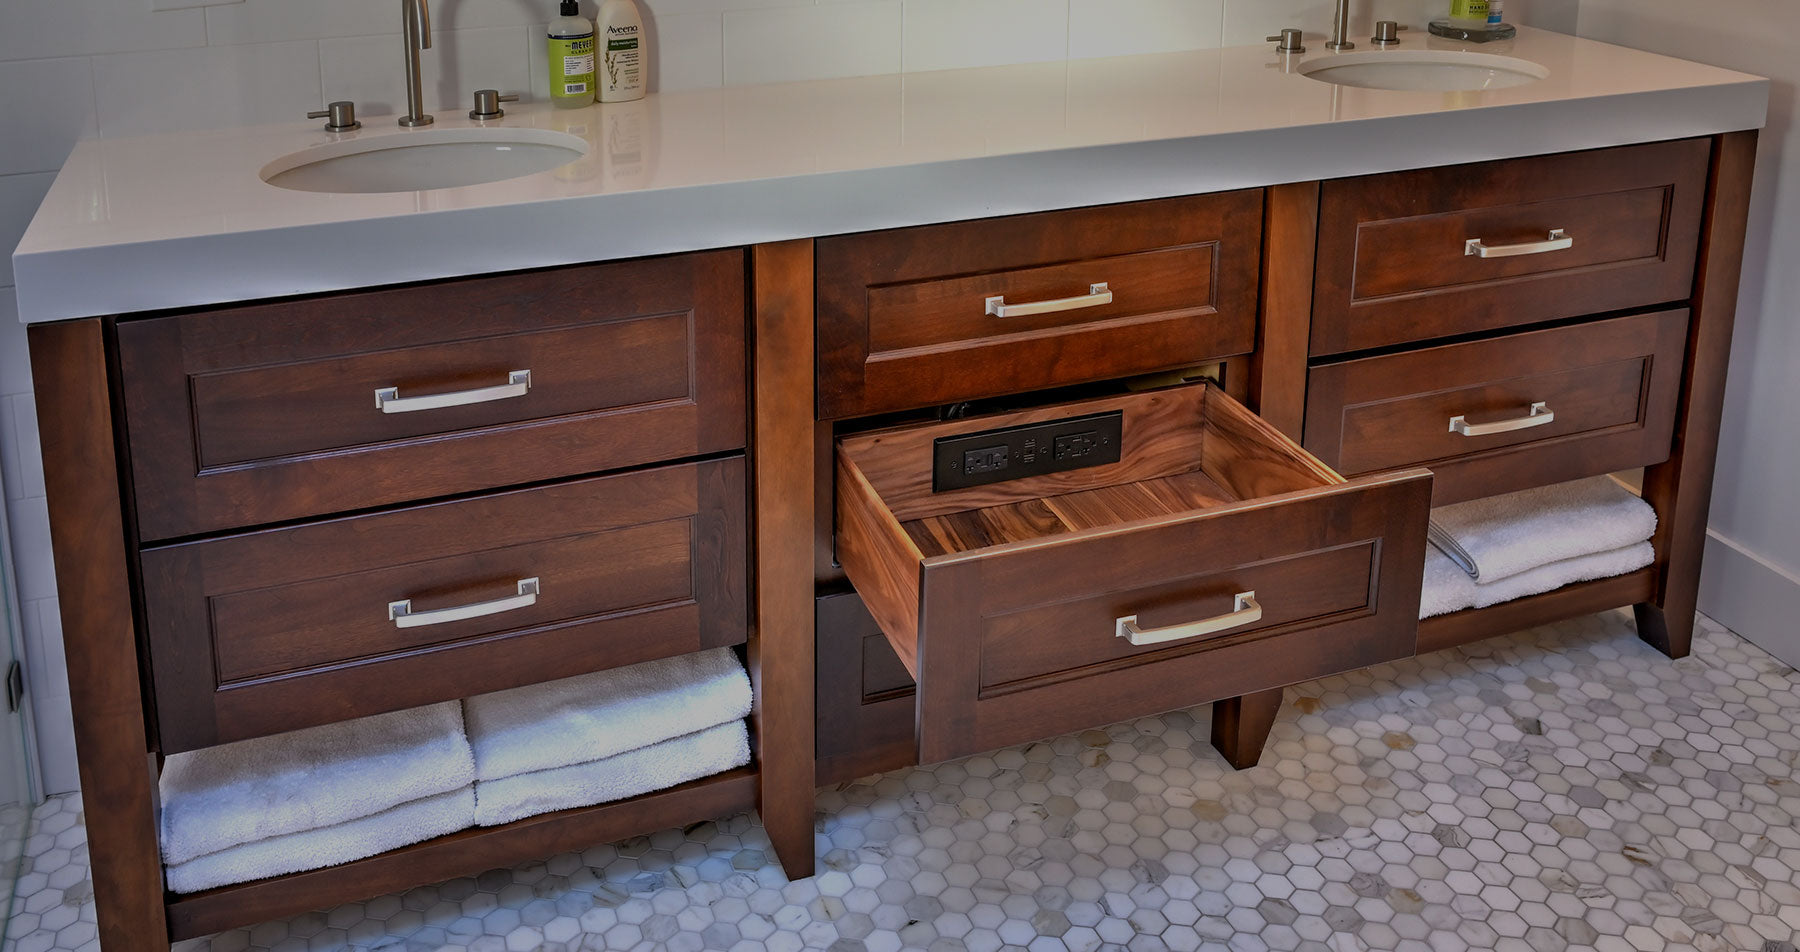 vanity drawer outlet for hair dryer